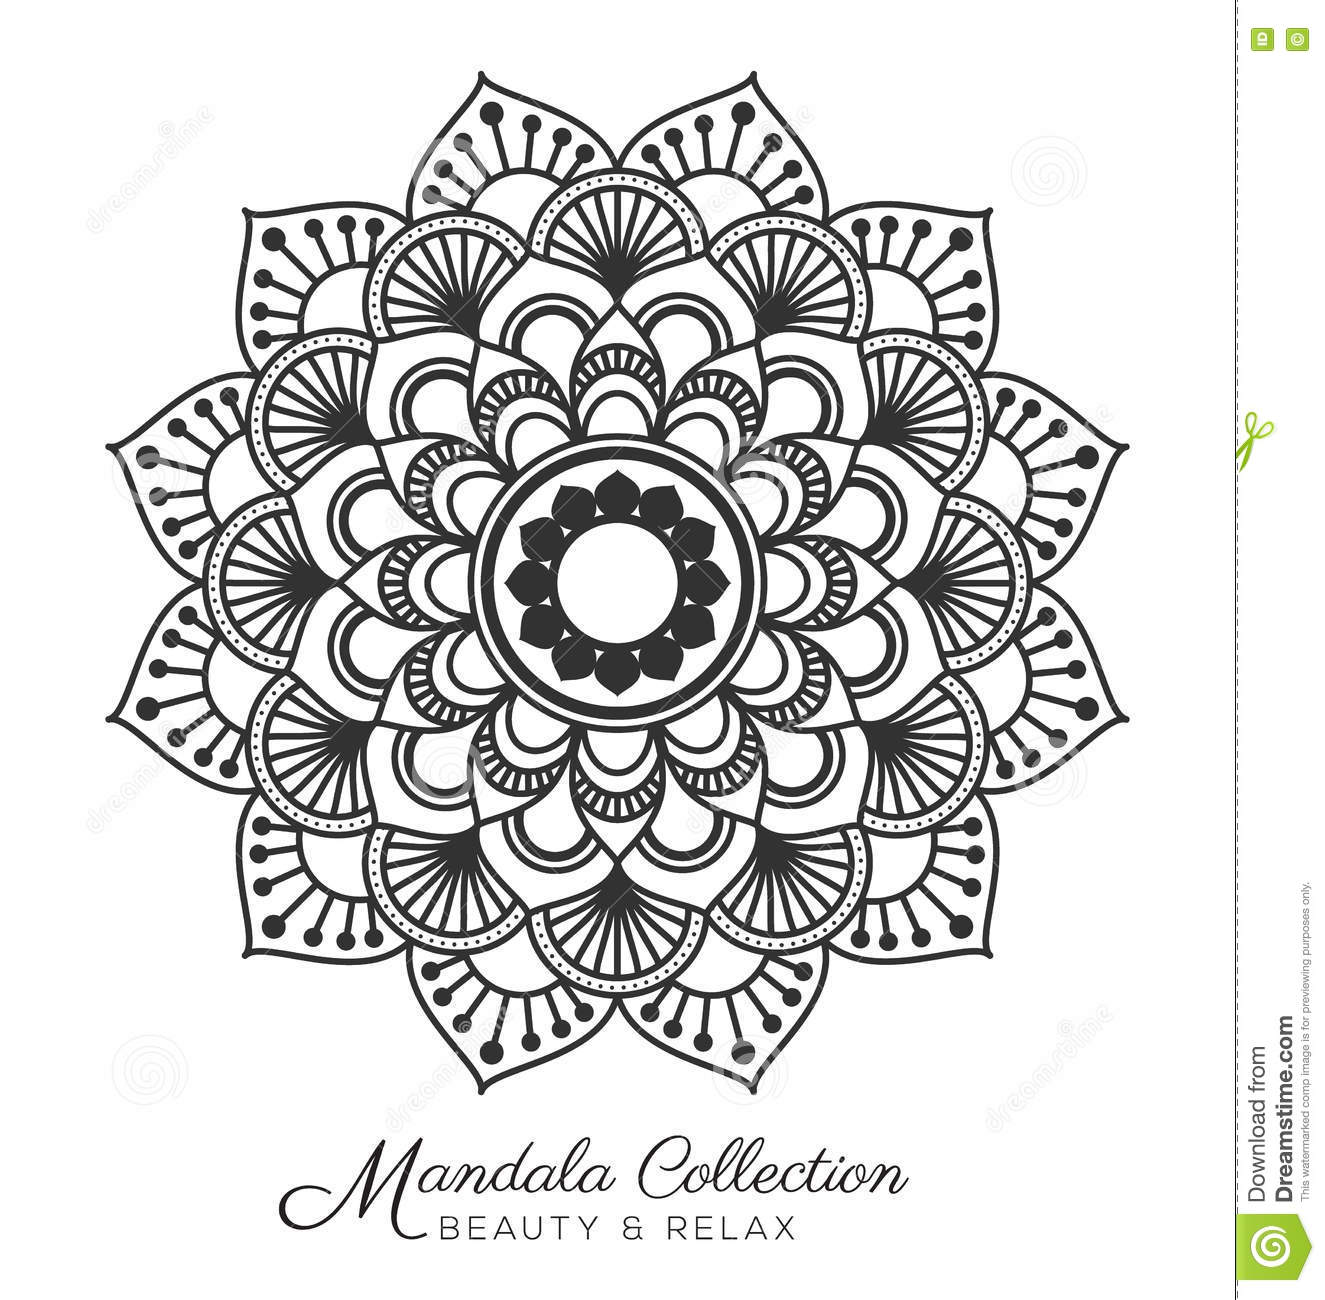 Mandala Design Stock Vector